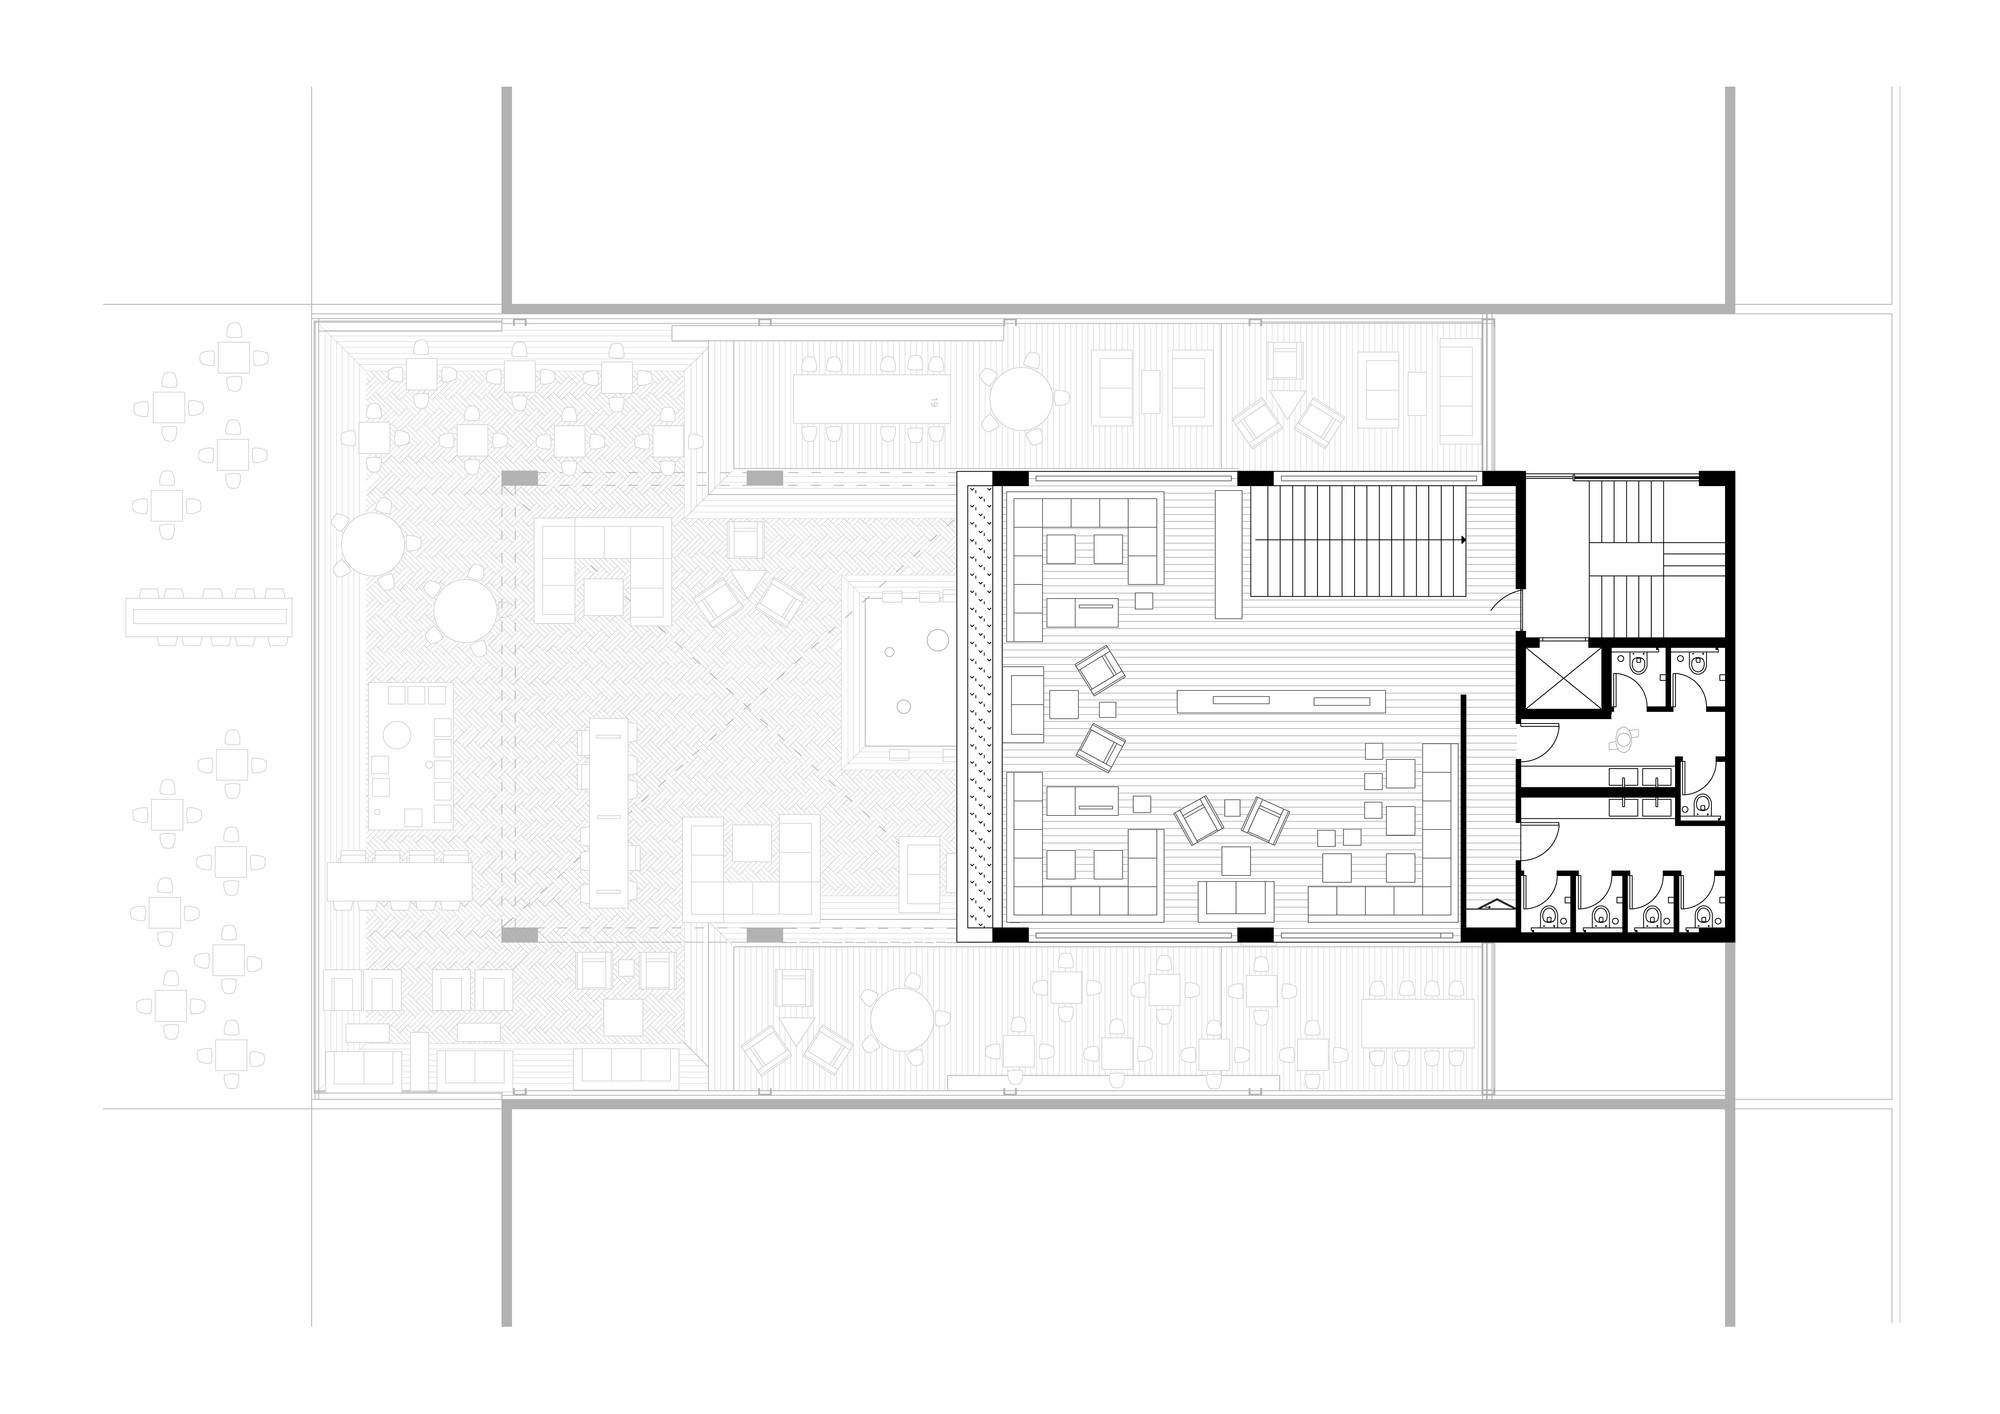 Gallery of coffee shop 314 architecture studio 7 for Coffee shop floor plan with dimensions